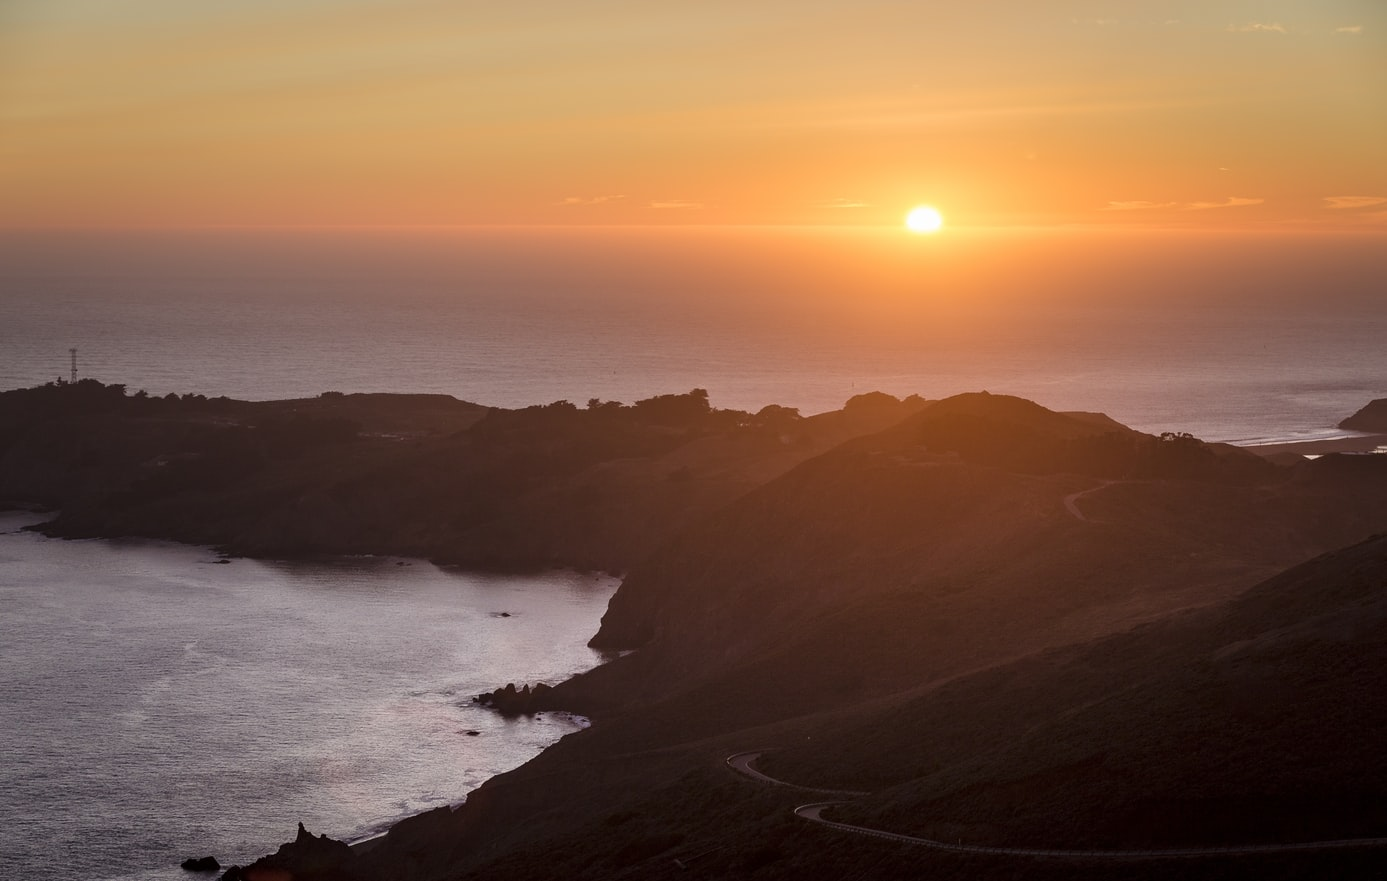 The sun setting over the hills and ocean. Sundowning can occur to individuals who suffer from alzheimers